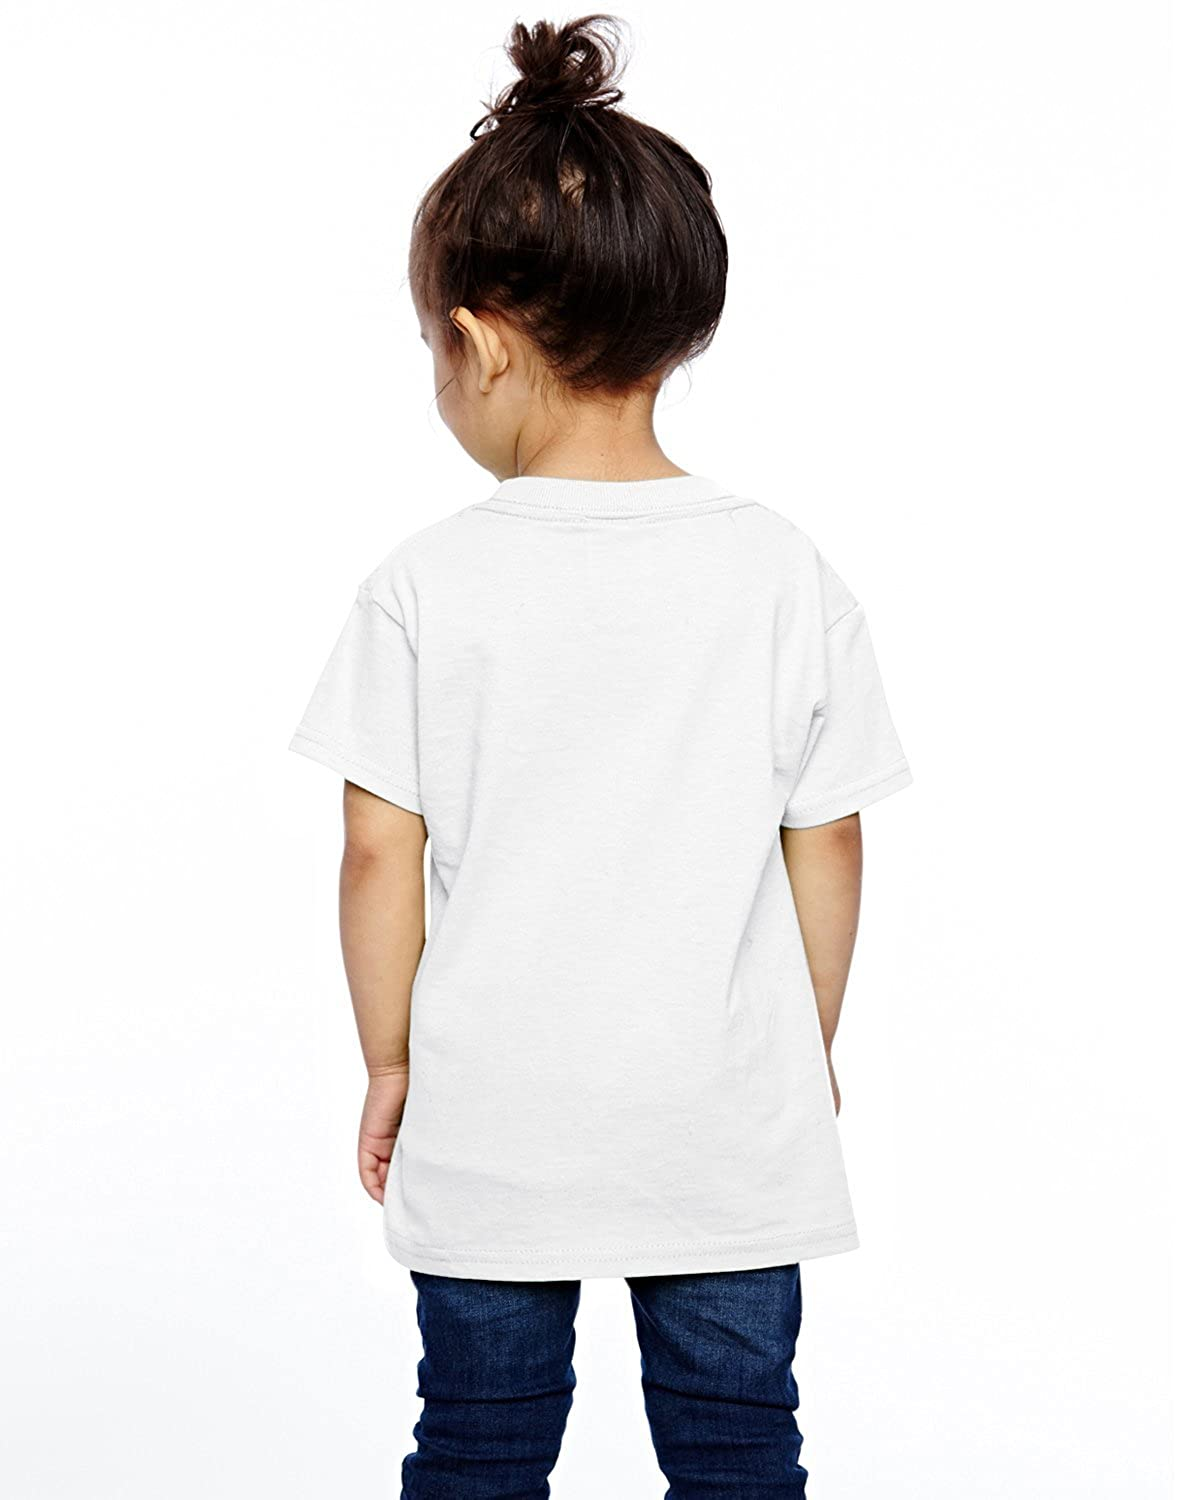 XYMYFC-E Deer Antlers Heartbeat 2-6 Years Old Kids Short-Sleeved T Shirt